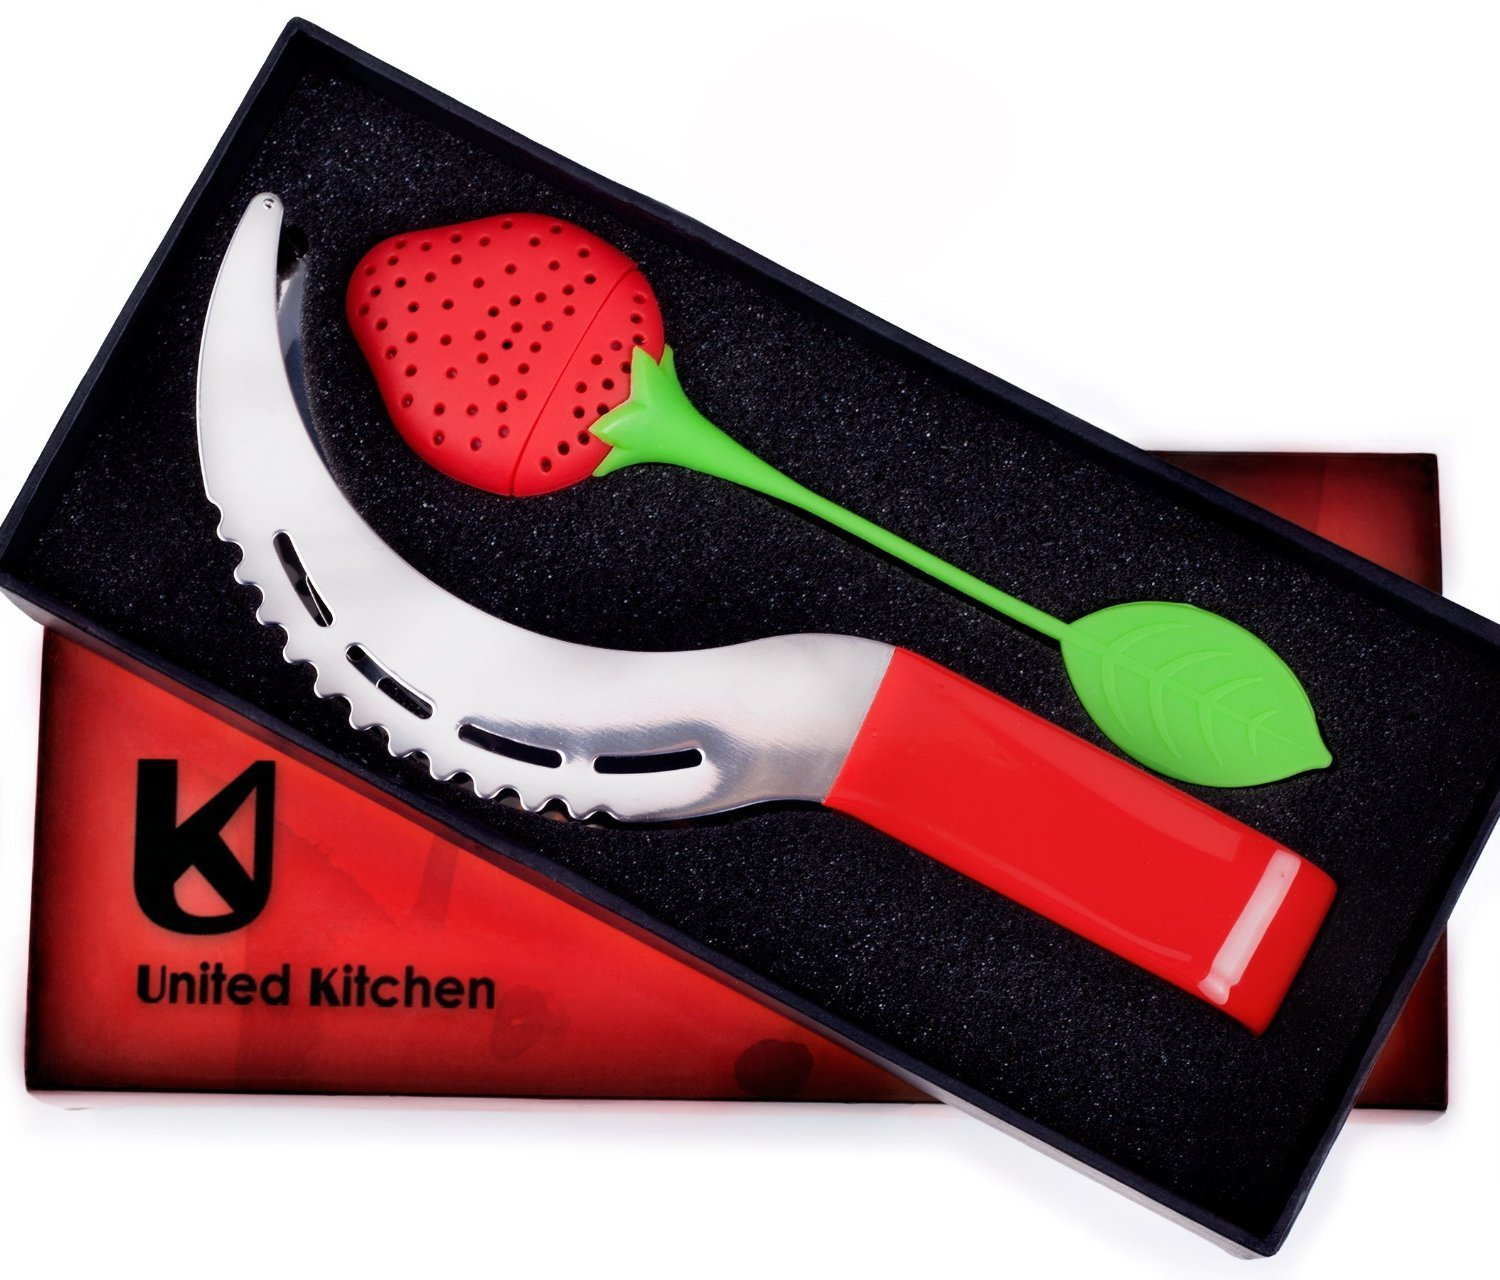 United kitchen's Watermelon Slicer & Tongs In A Gift Box With A Strawberry Style Tea Infuser! - As Seen on TV SYNCHKG086145